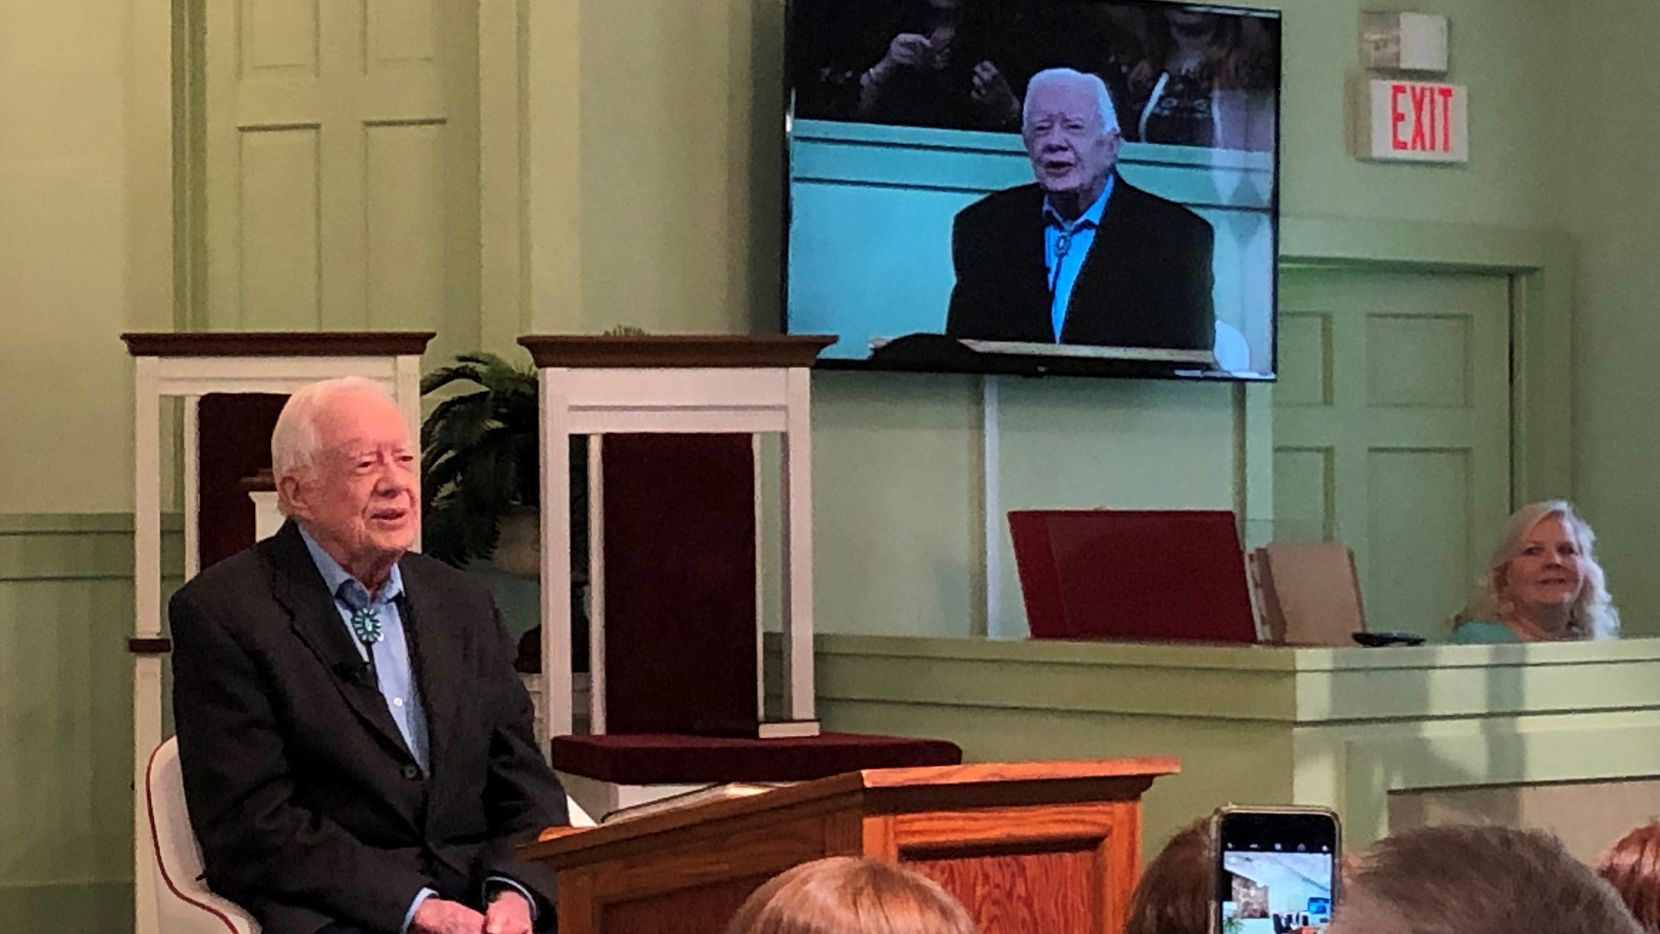 President Jimmy Carter teaches Sunday school at Maranatha Baptist Church in Plains, Ga., twice a month.